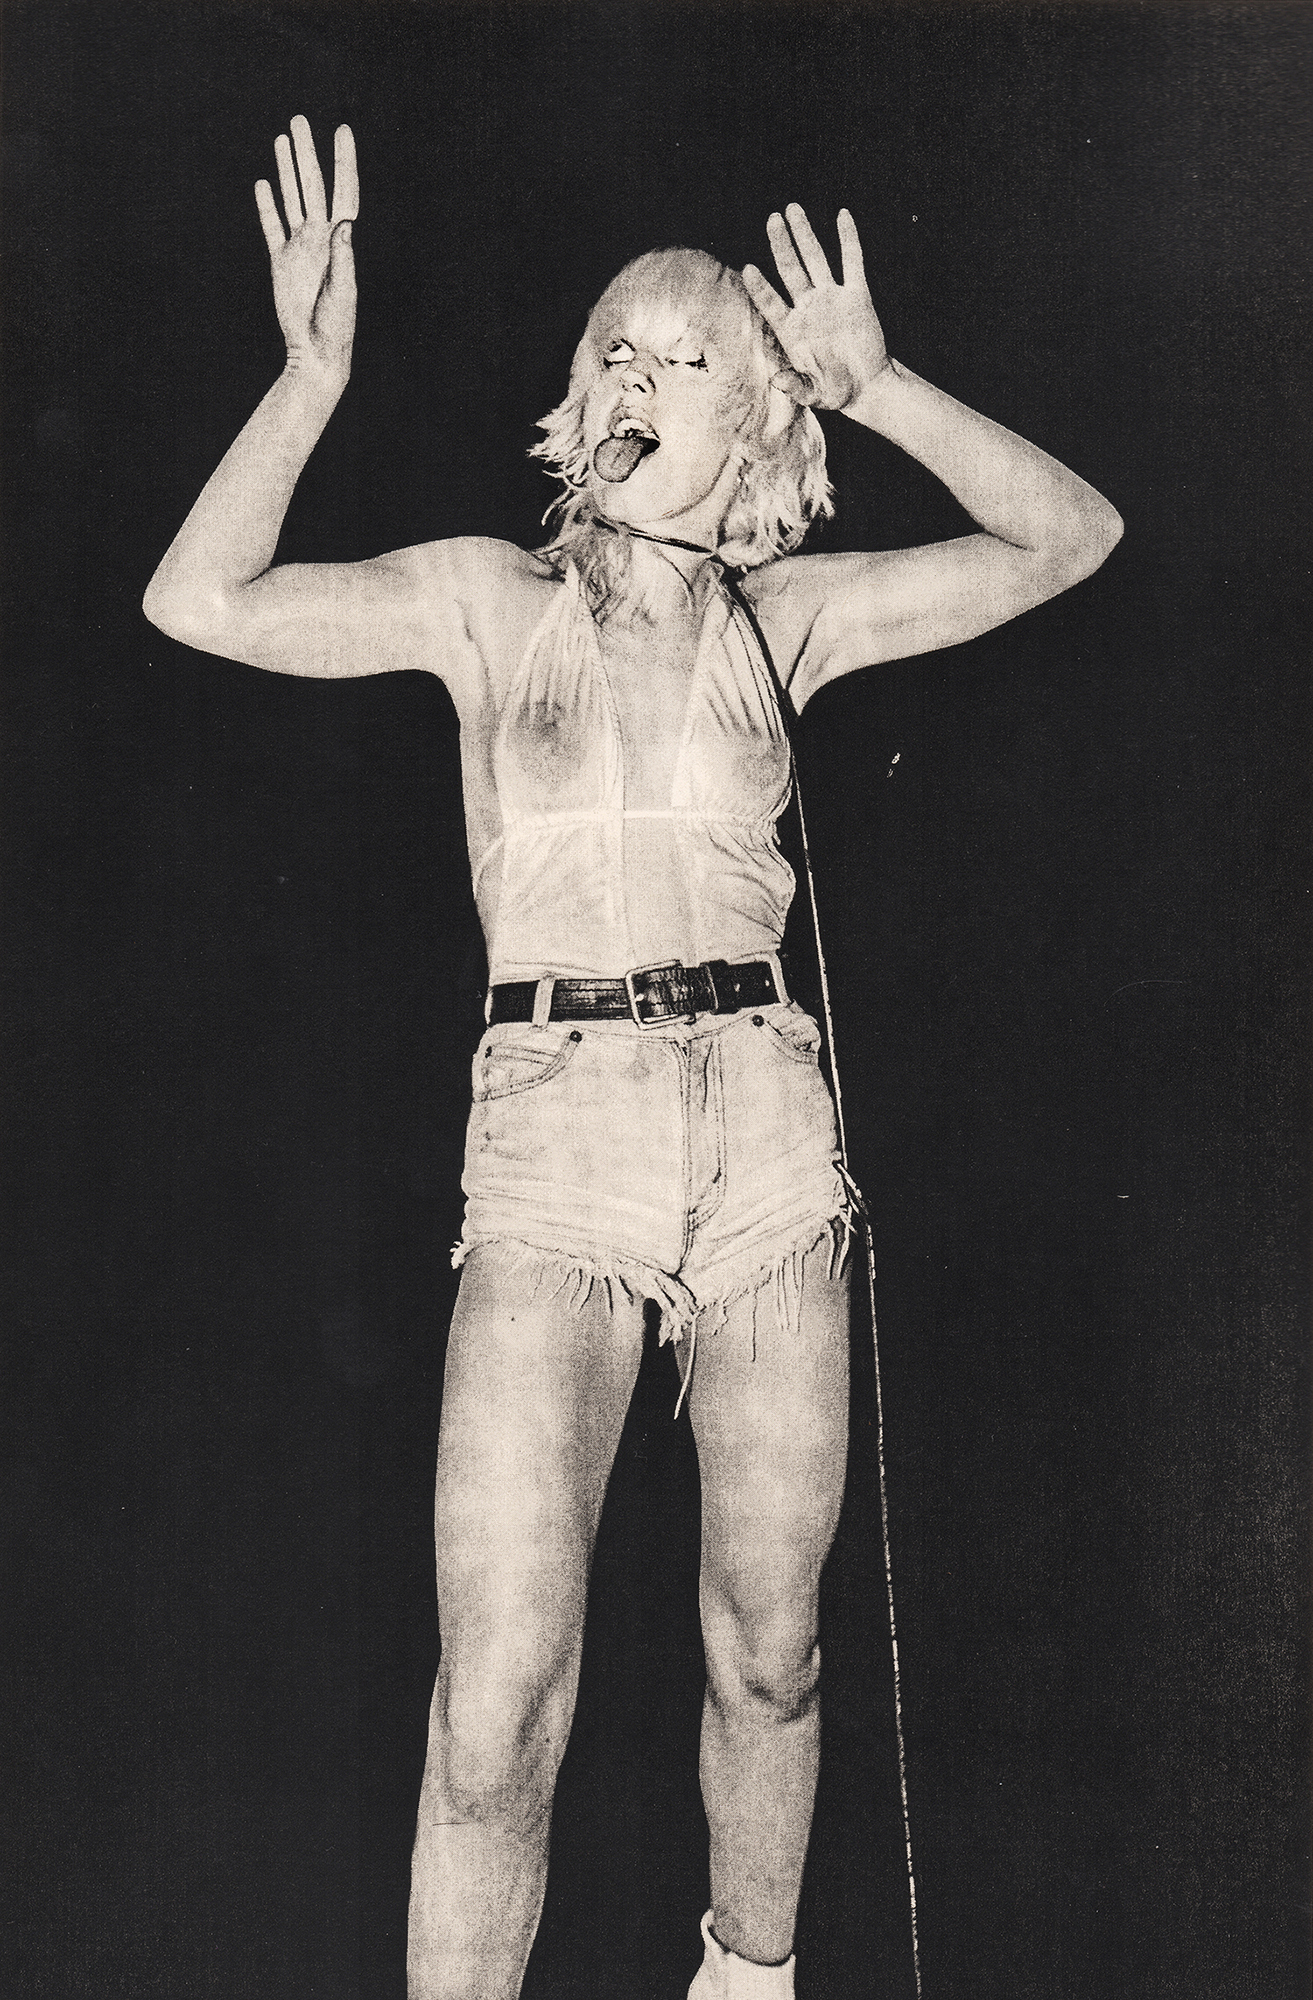 Amyl and the Sniffers Scans edit slight sm shop 2 smmmmm.jpg